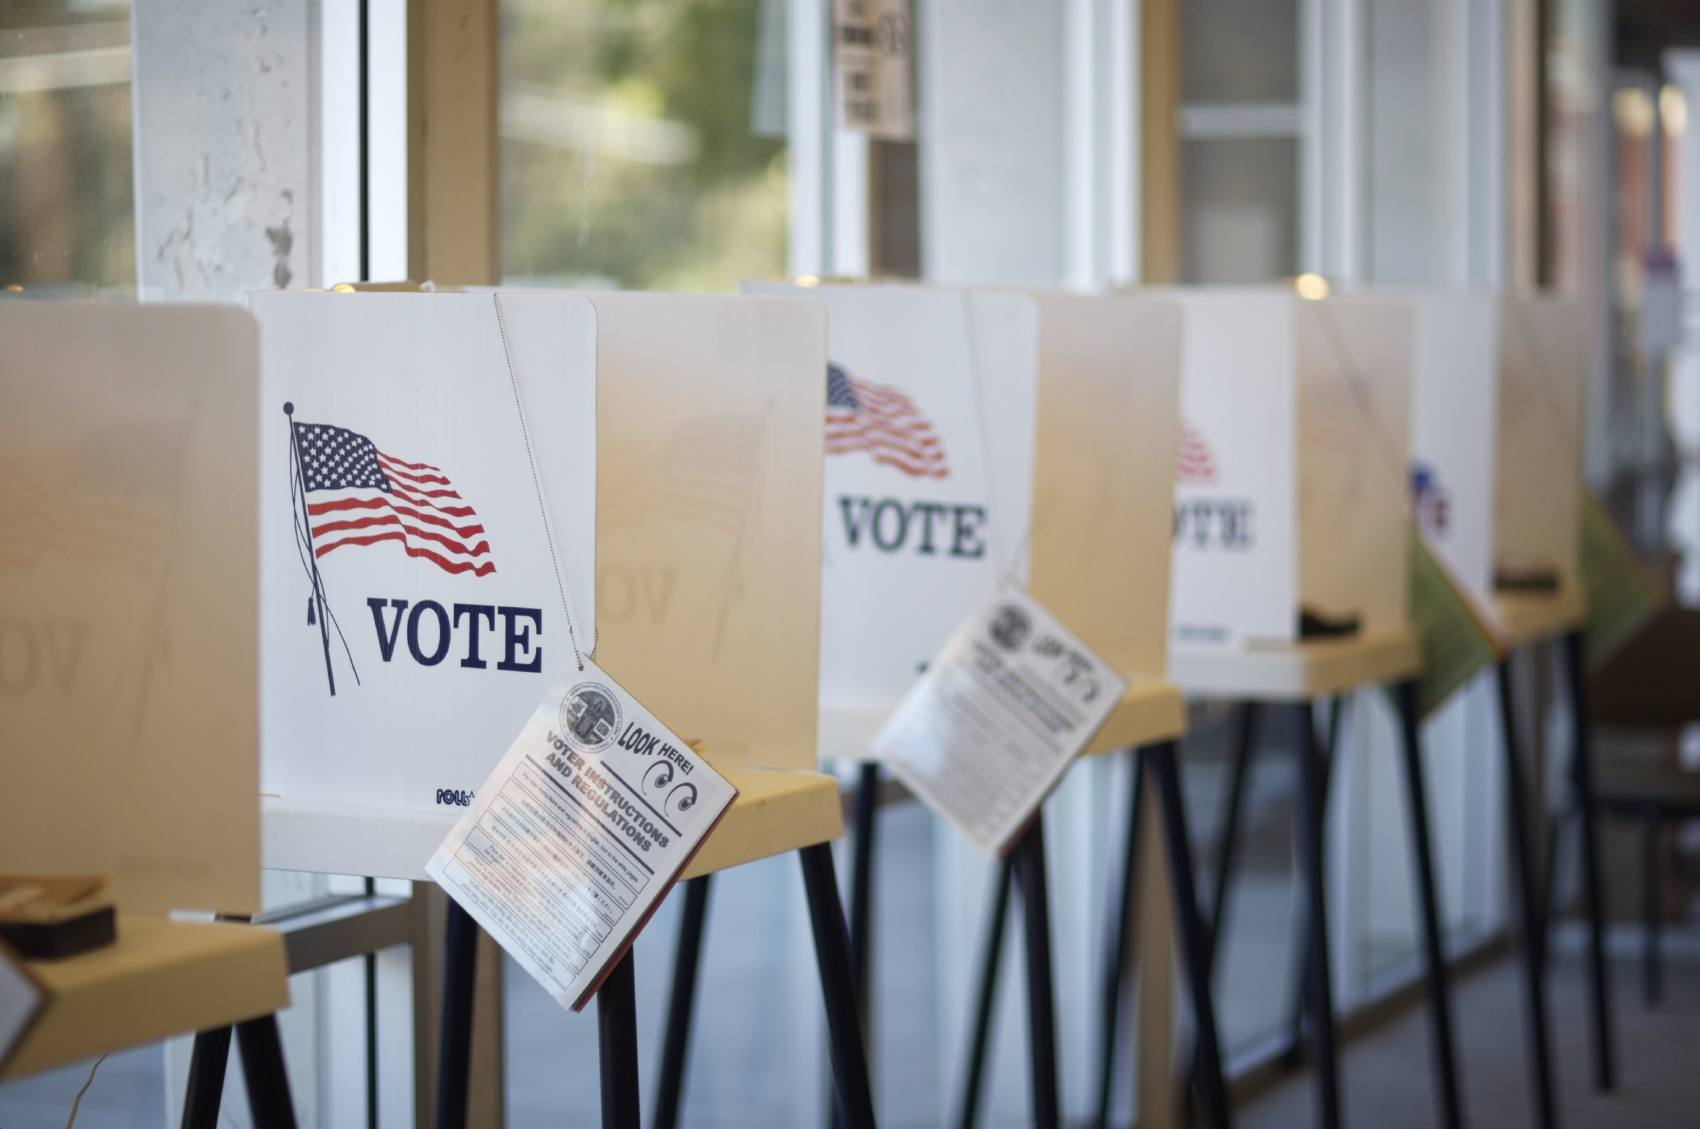 dhs hacked election